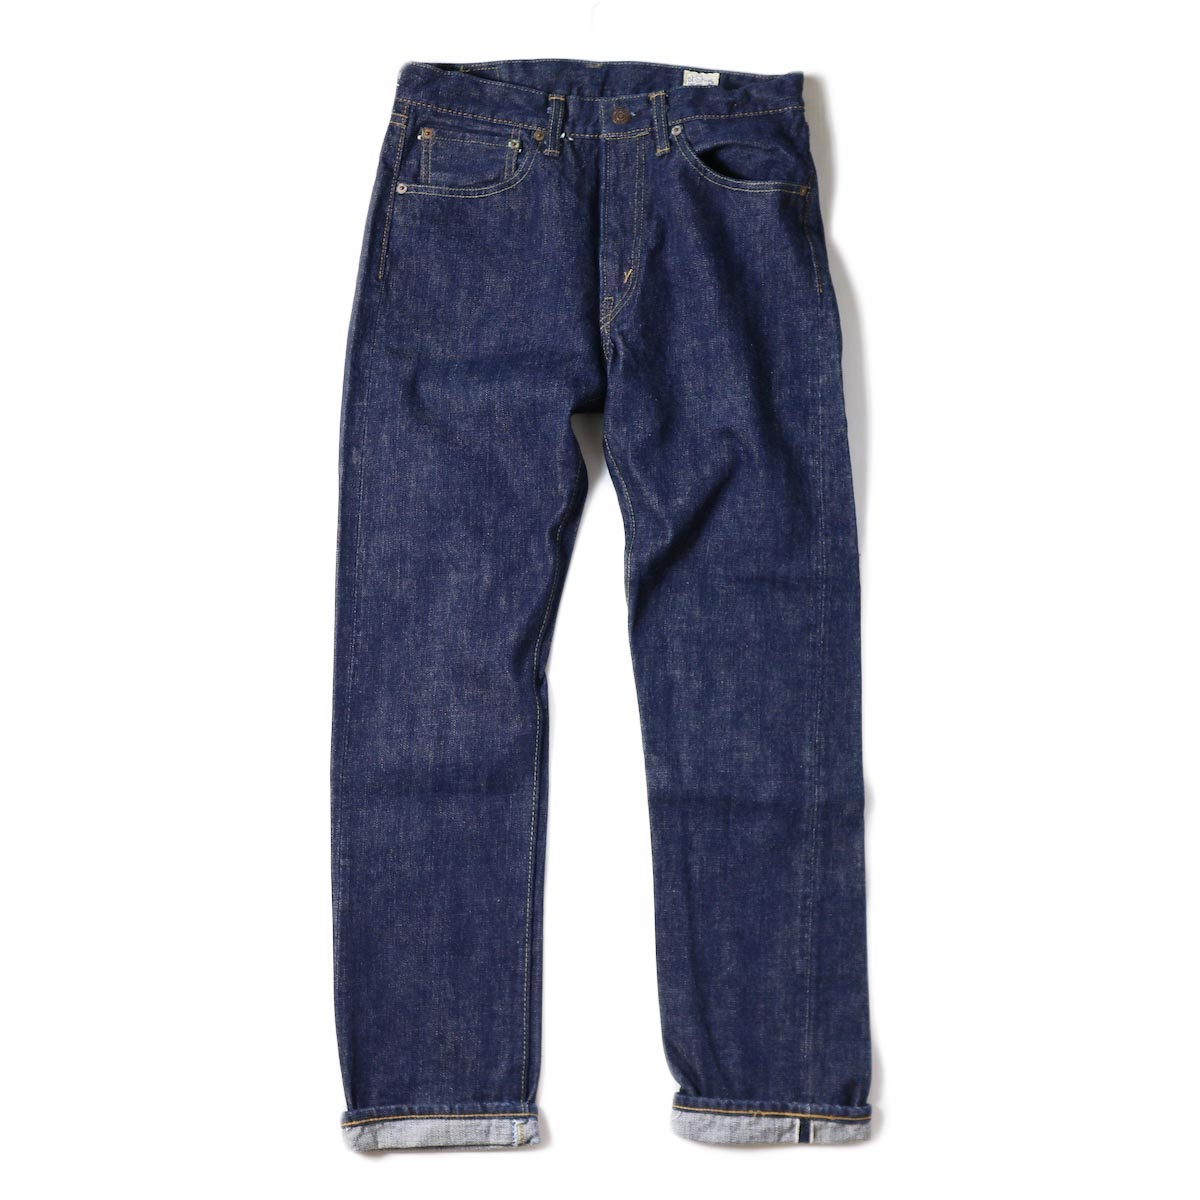 orSlow / Ladies 107 IVY FIT DENIM -One Wash